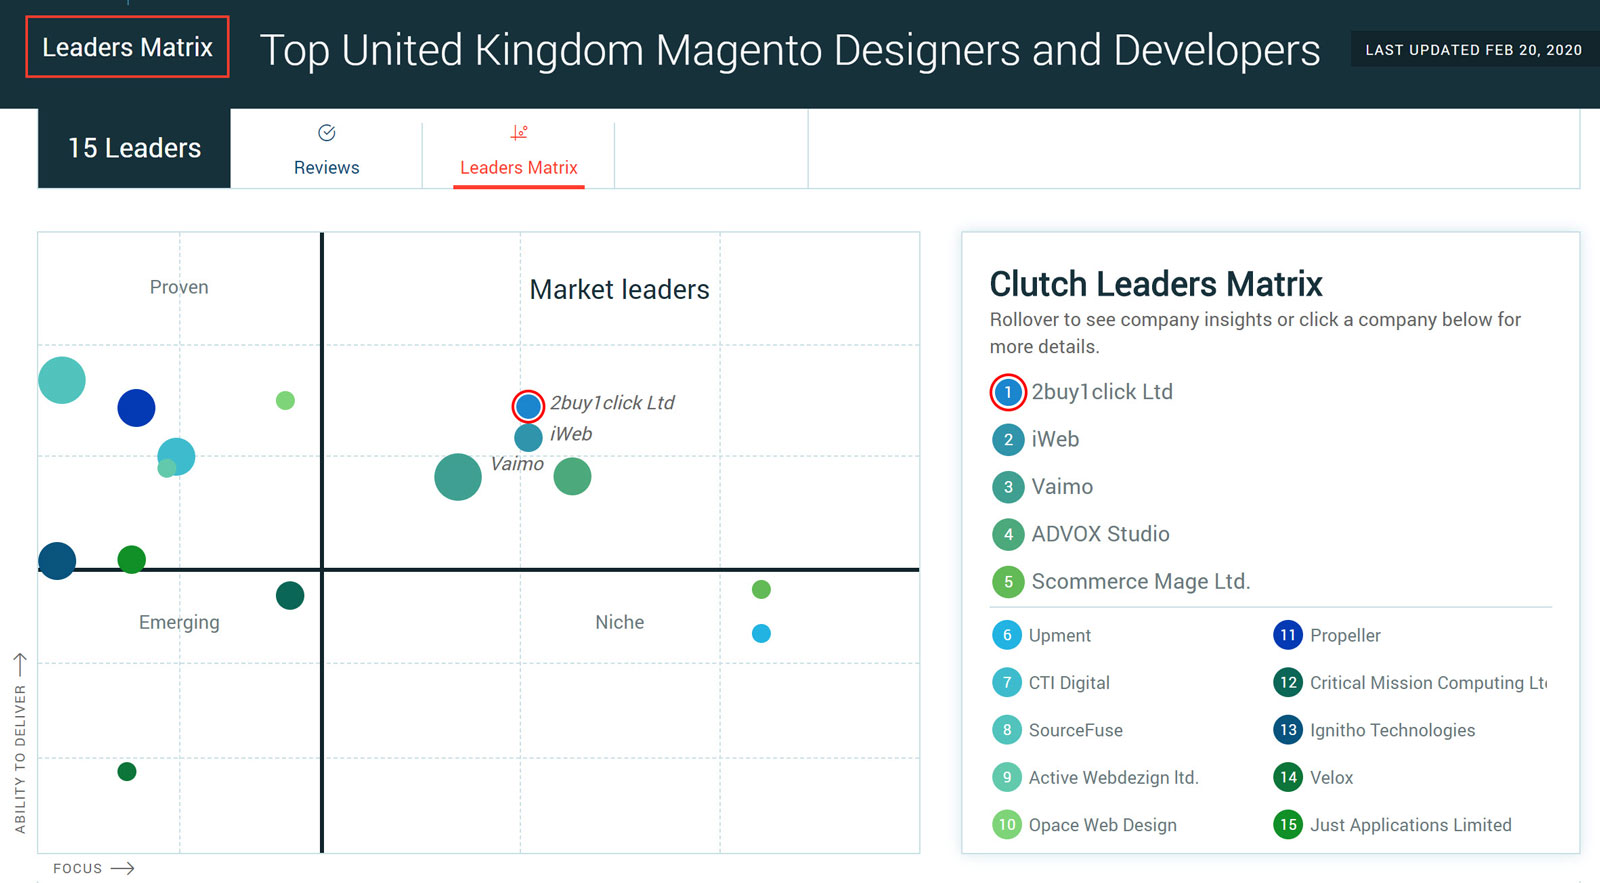 Clutch Awards - Leaders Matrix Magento